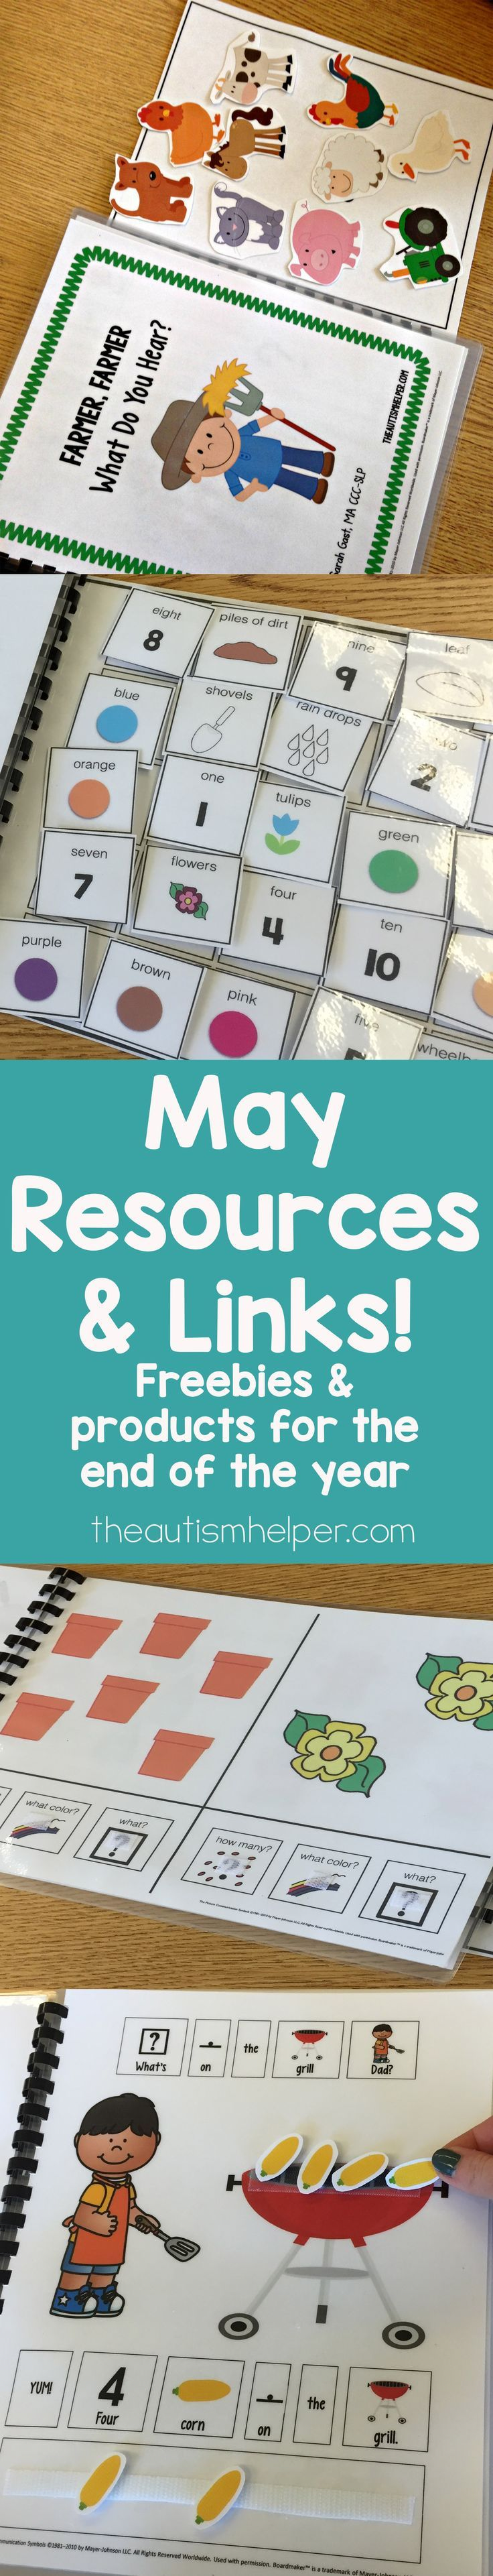 I always print a bunch of new resources for these last few weeks to keep the attention of both my students & me! Check out the great freebie links from other teacher authors PLUS resources that are rockin in my classroom right now. From theautismhelper.co